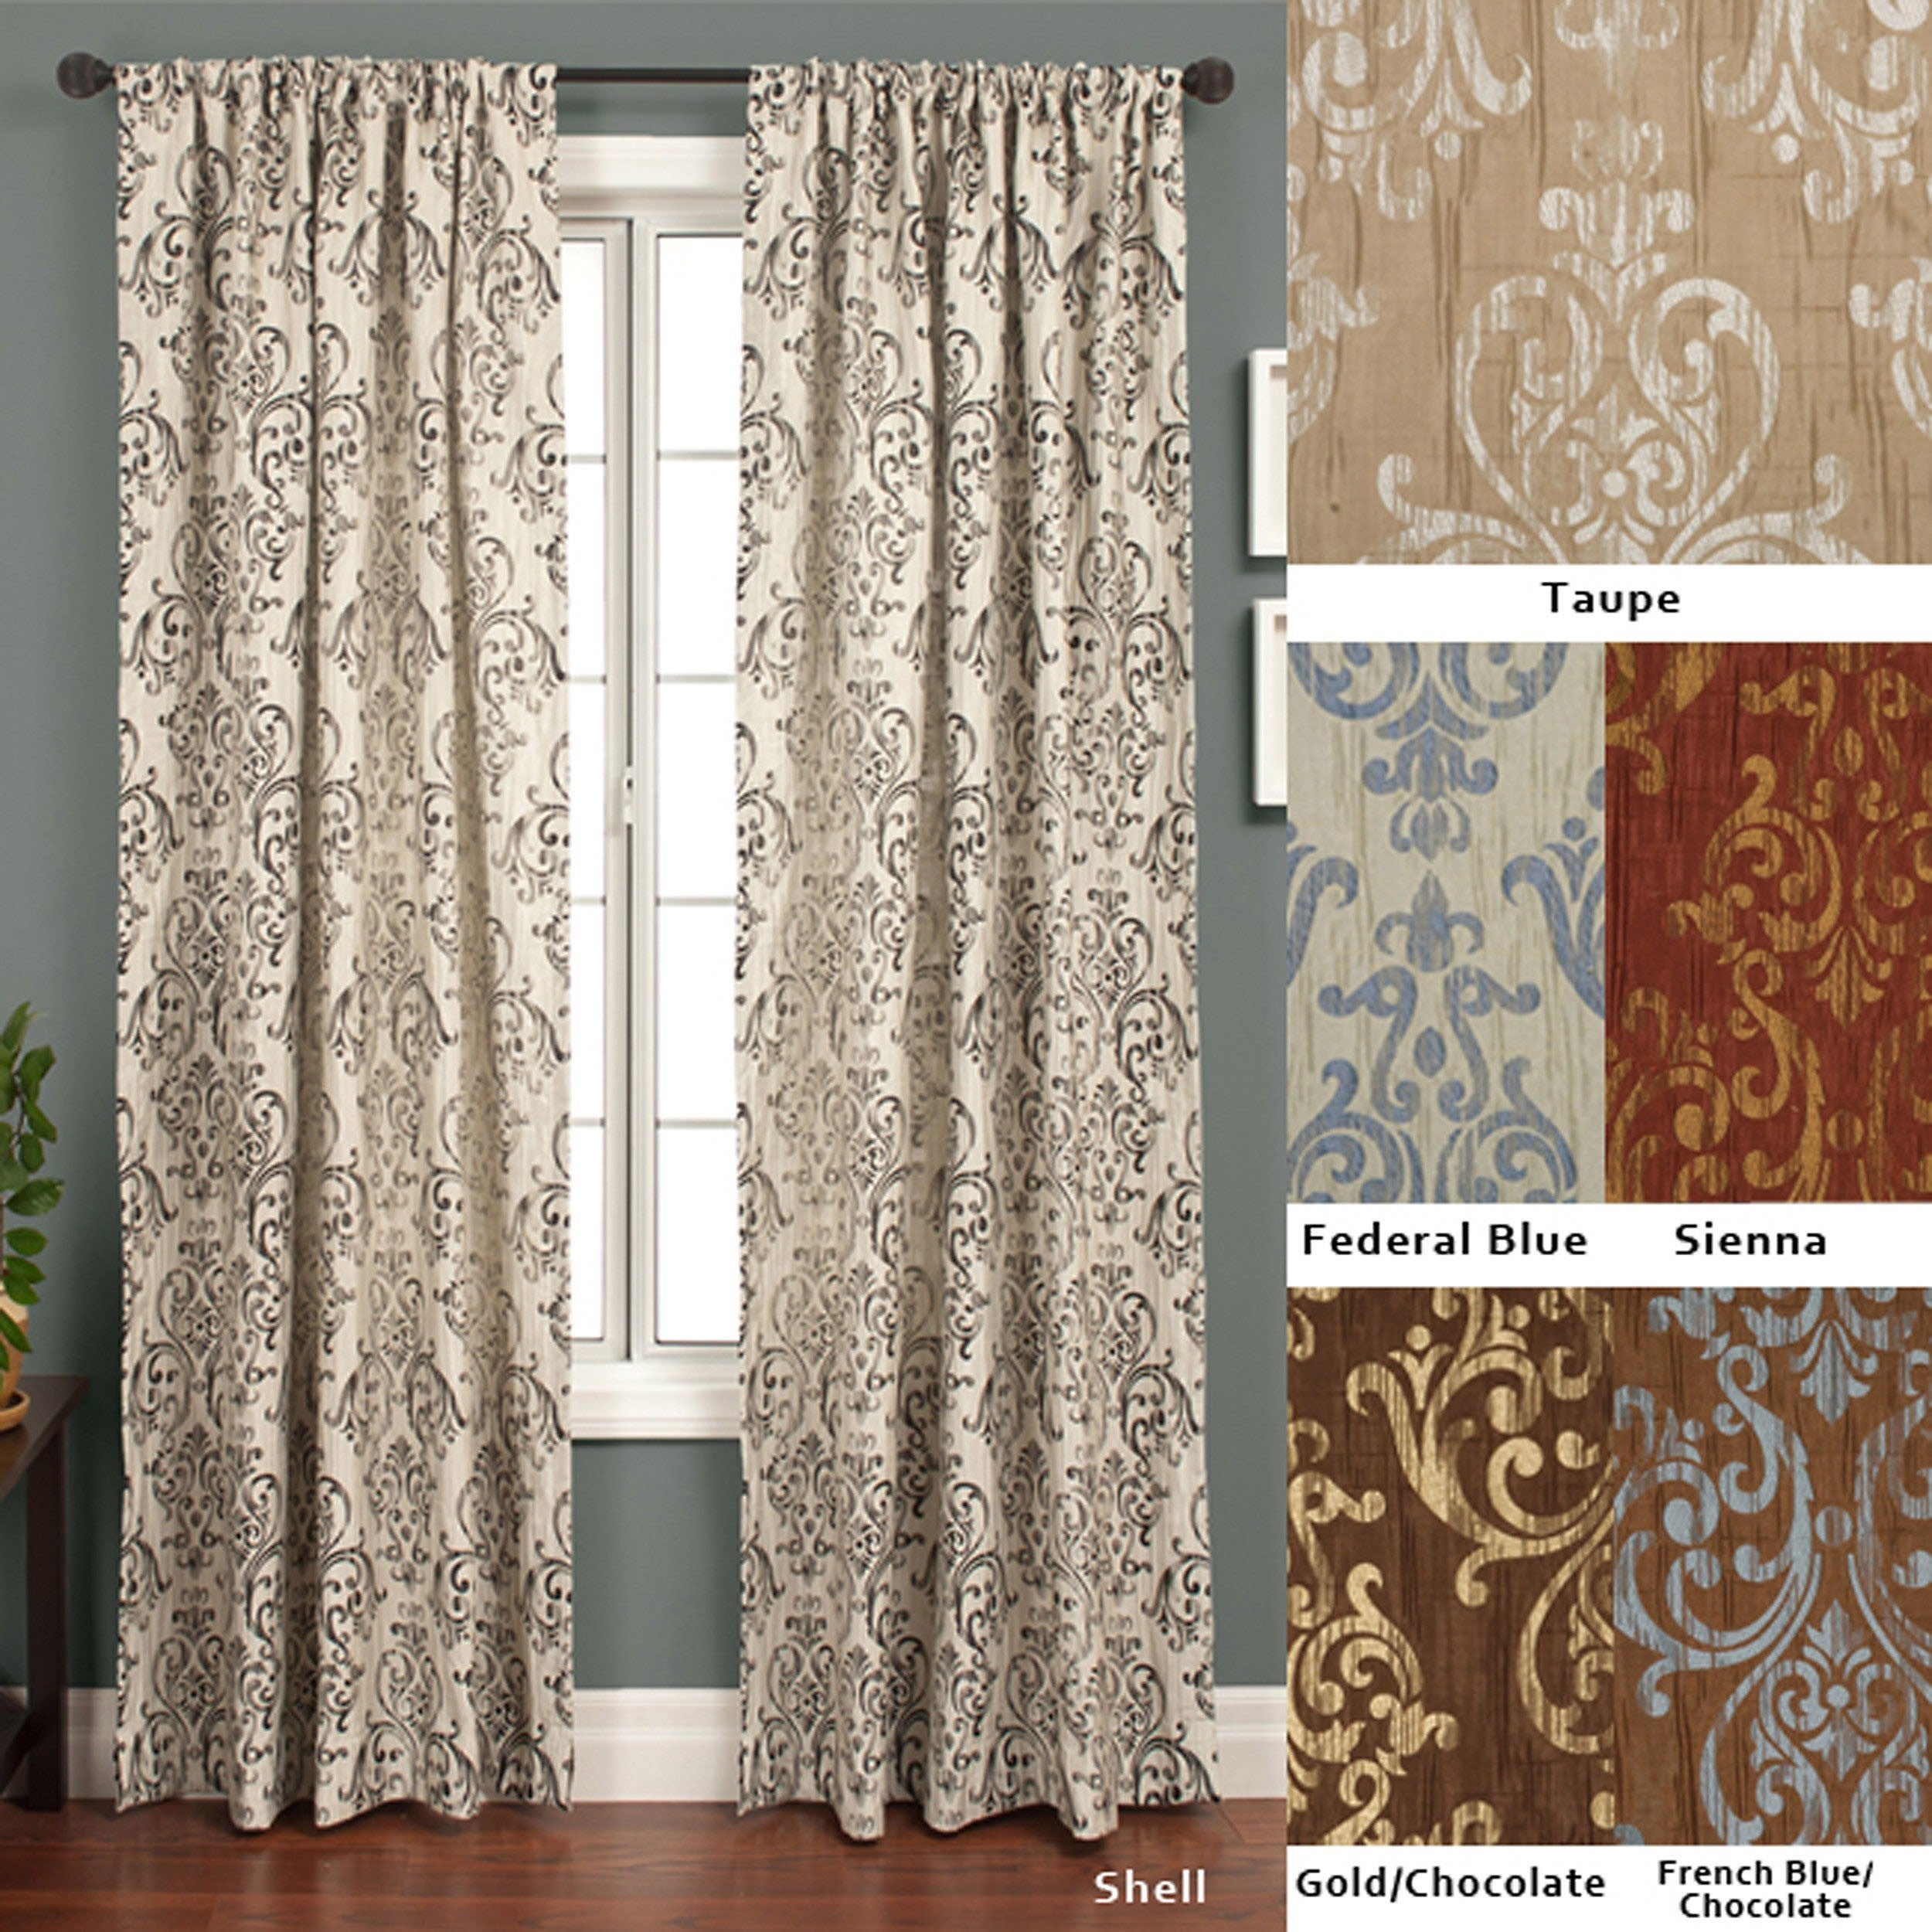 Details About Softline Roman Crinkle Jacquard 120 Inch Curtain Panel 50 X